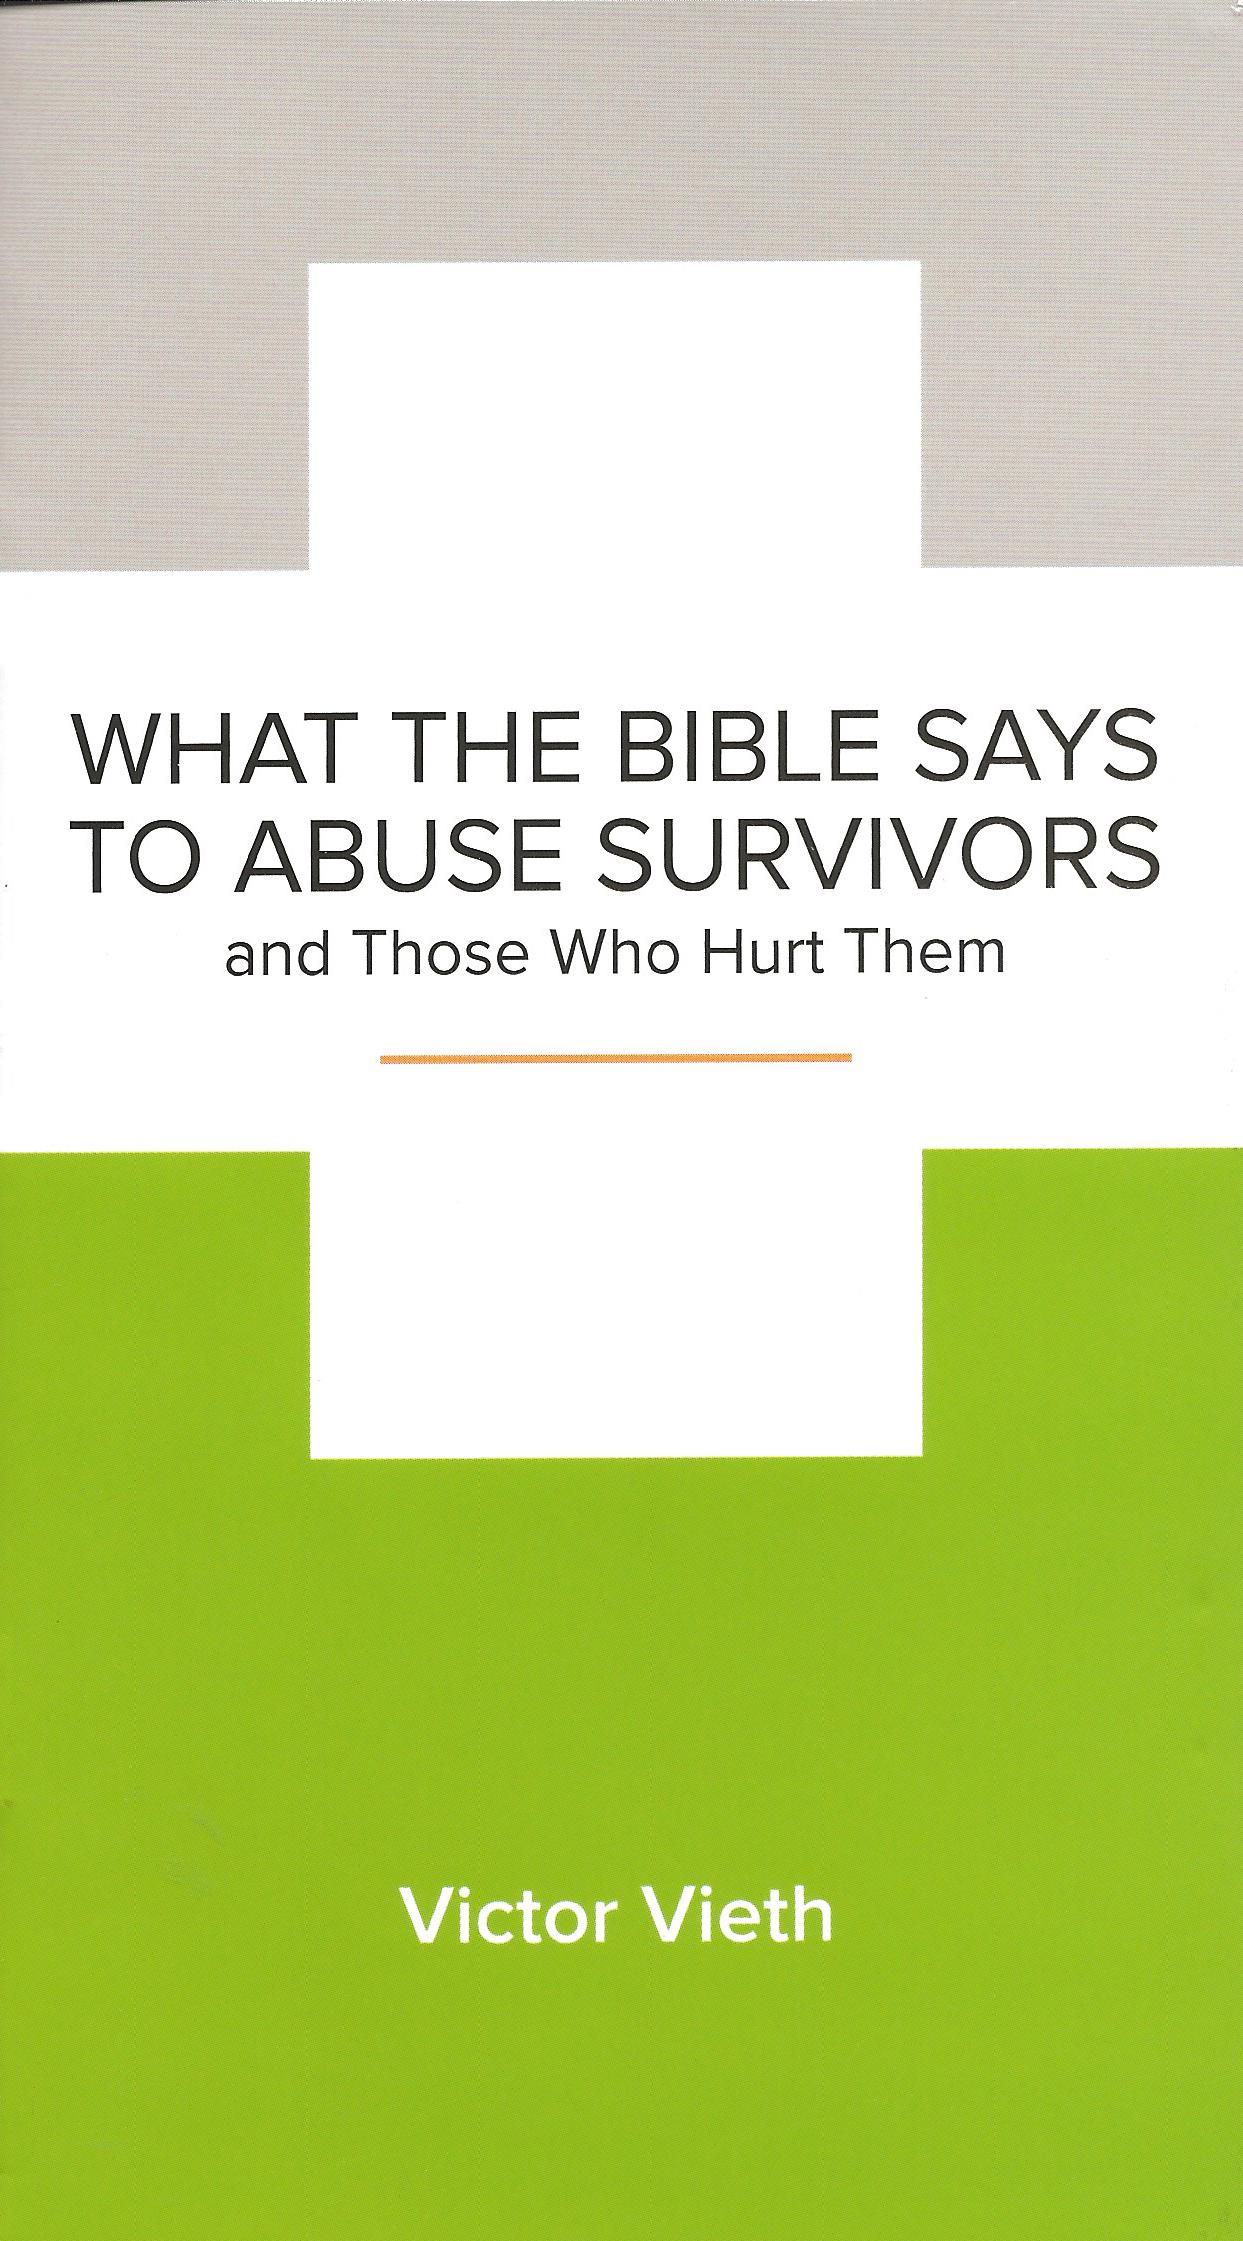 WHAT THE BIBLE SAYS TO ABUSE SURVIVORS Victor Vieth